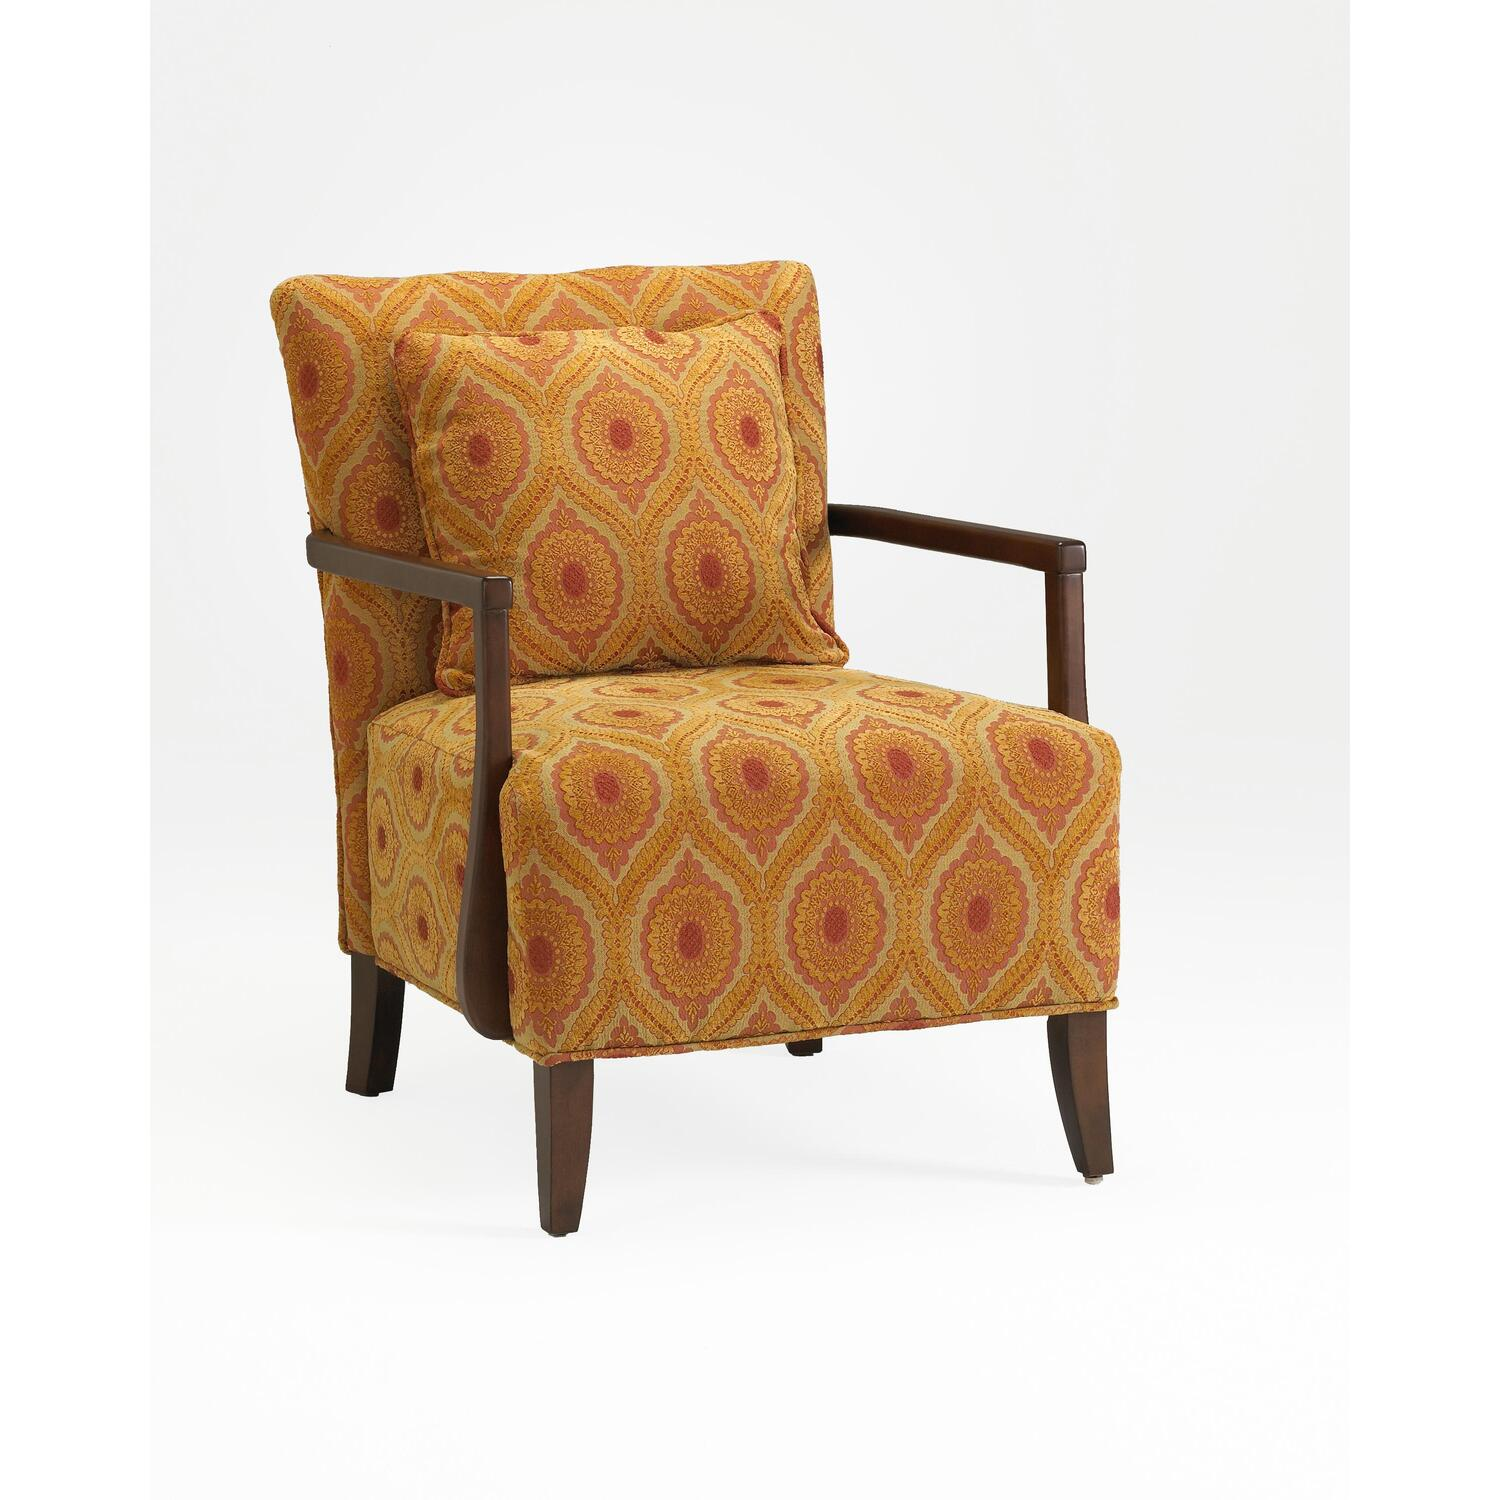 Vintage Accent Chair Dante Vintage Accent Chair